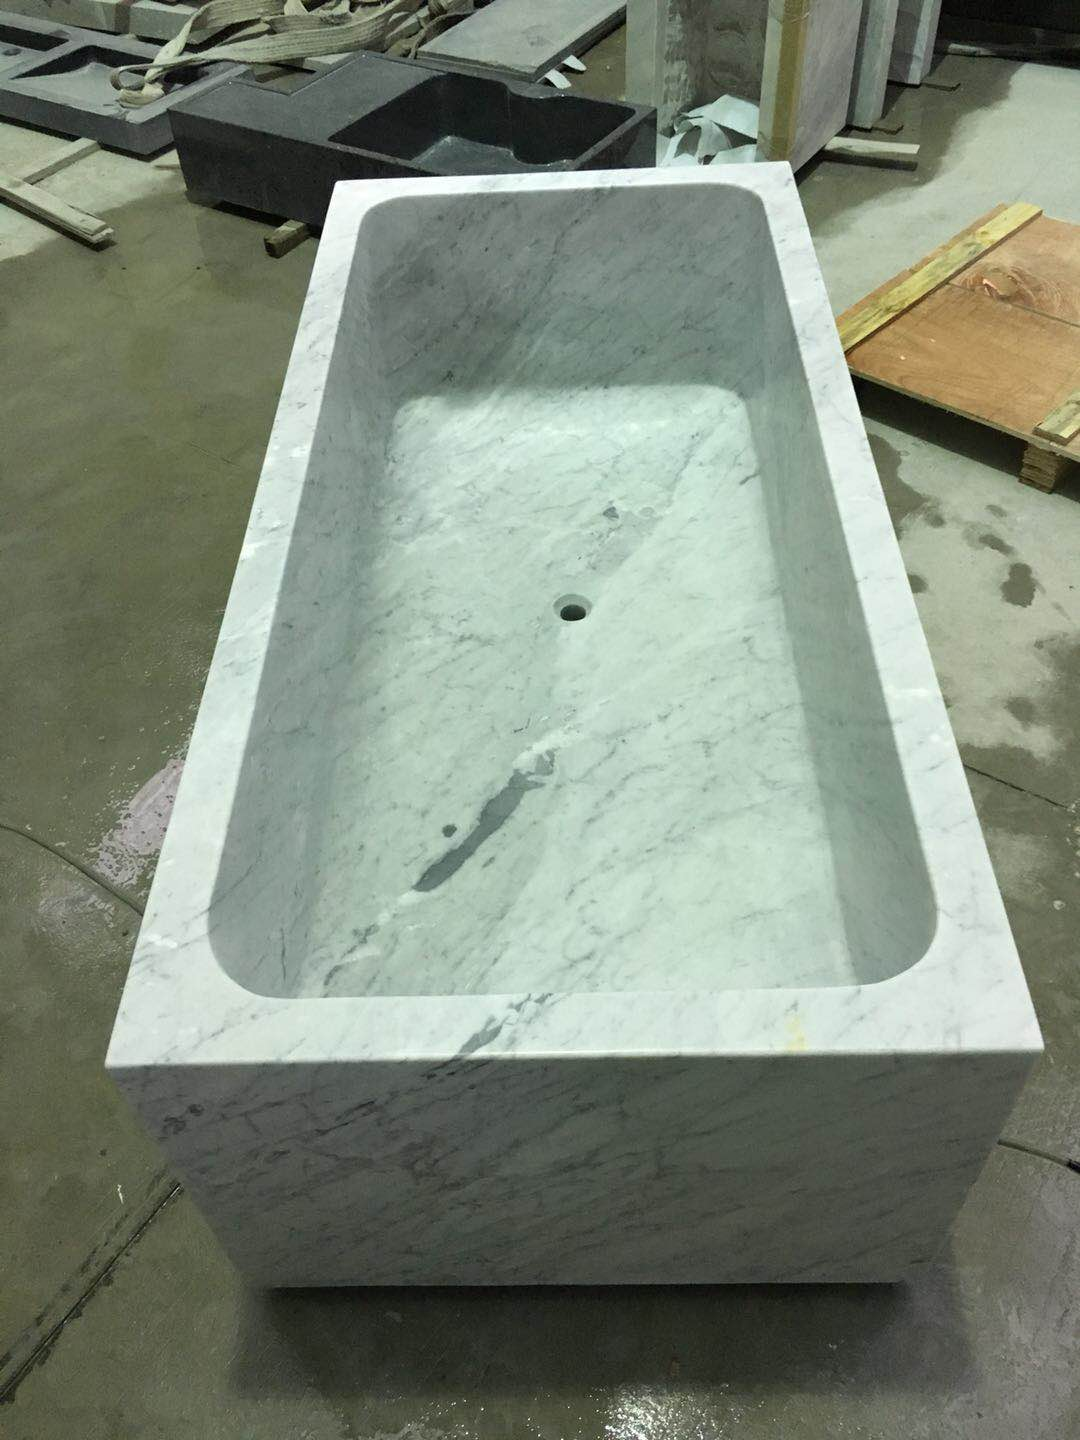 big bathtub,bathtub poland,48 inch bathtub,inflatable bathtub,carved stone bathtub,cheap freestanding bathtub,folding bathtub,deep bathtub